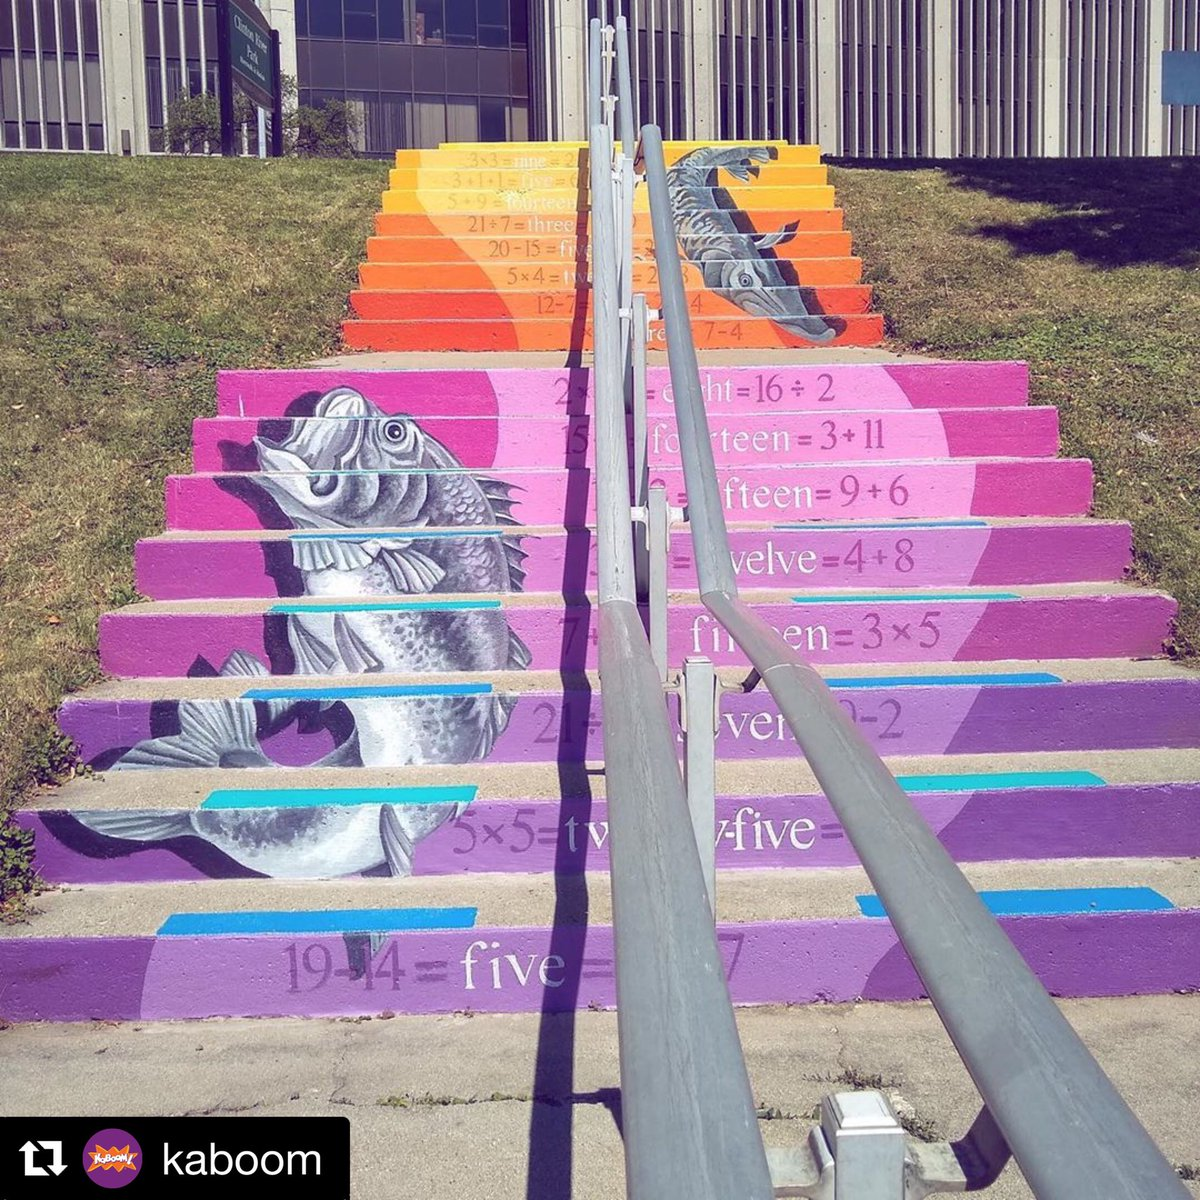 Find the magic in everyday spaces!📍Mount Clemens, Macomb County, MI #PlayEverywhere #TransformationTuesday #mountclemens #publicart #publicmural Photo by @kaboom Art by @WendyPopko